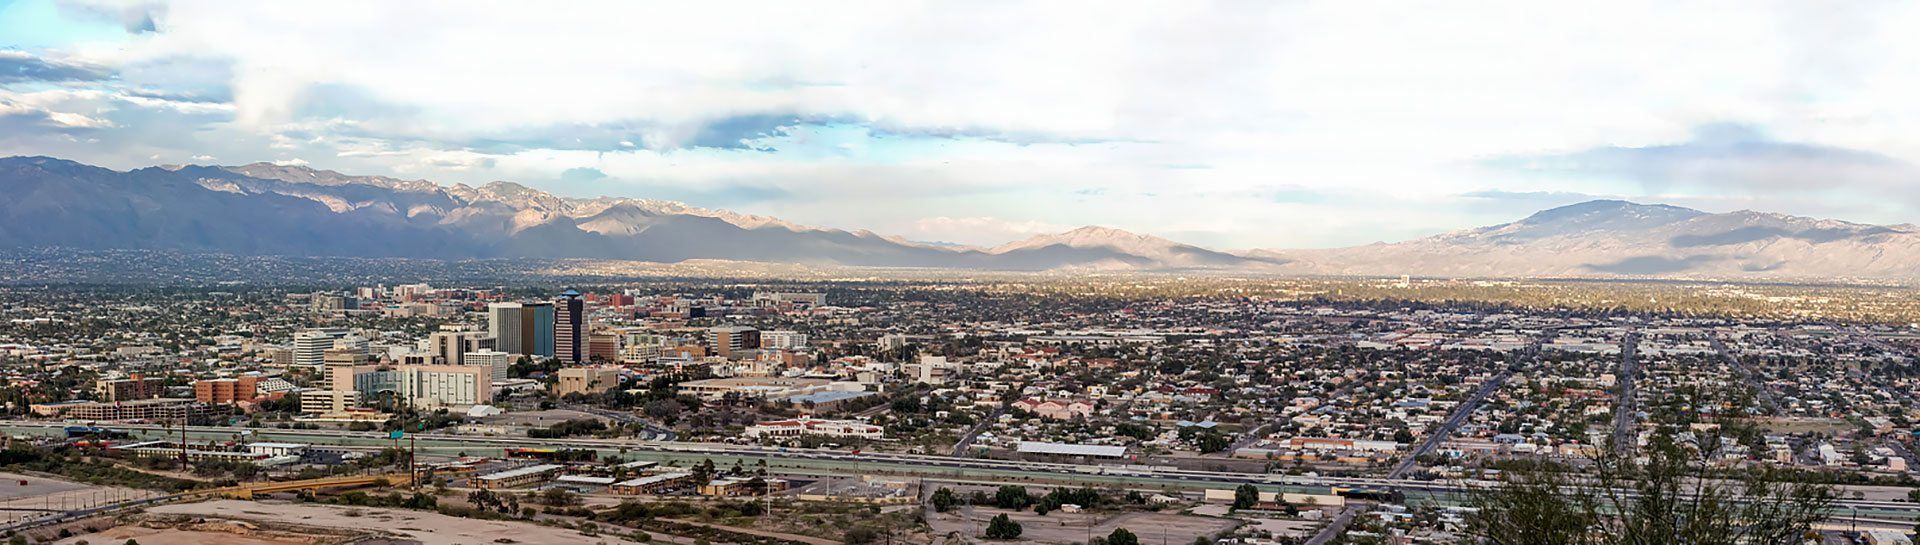 Tucson skyline panoramic